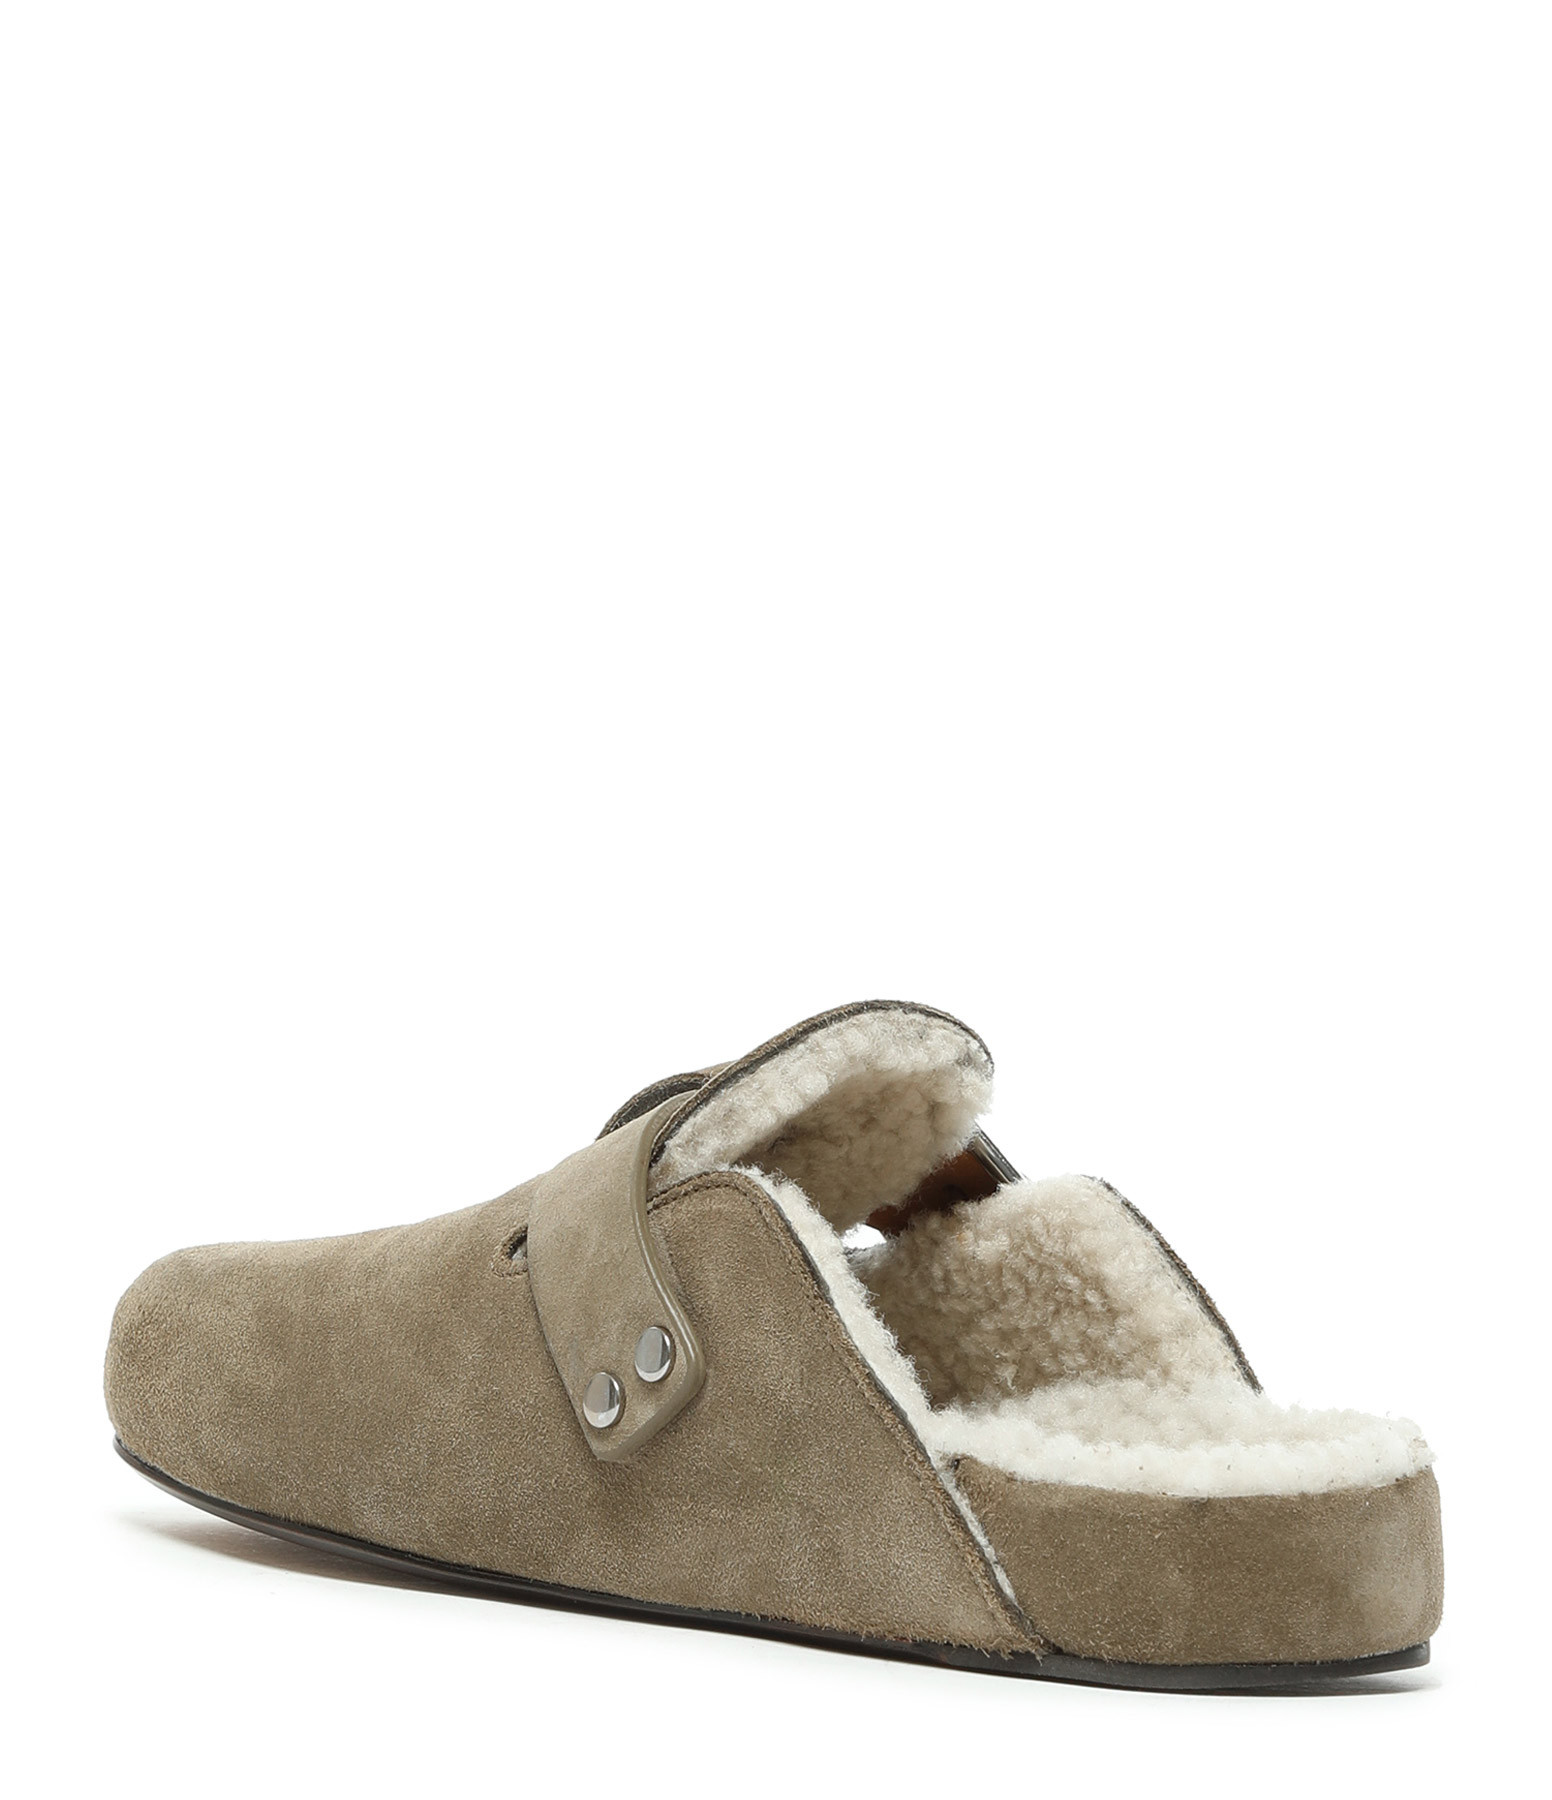 ISABEL MARANT - Mules Mirvin Cuir Taupe